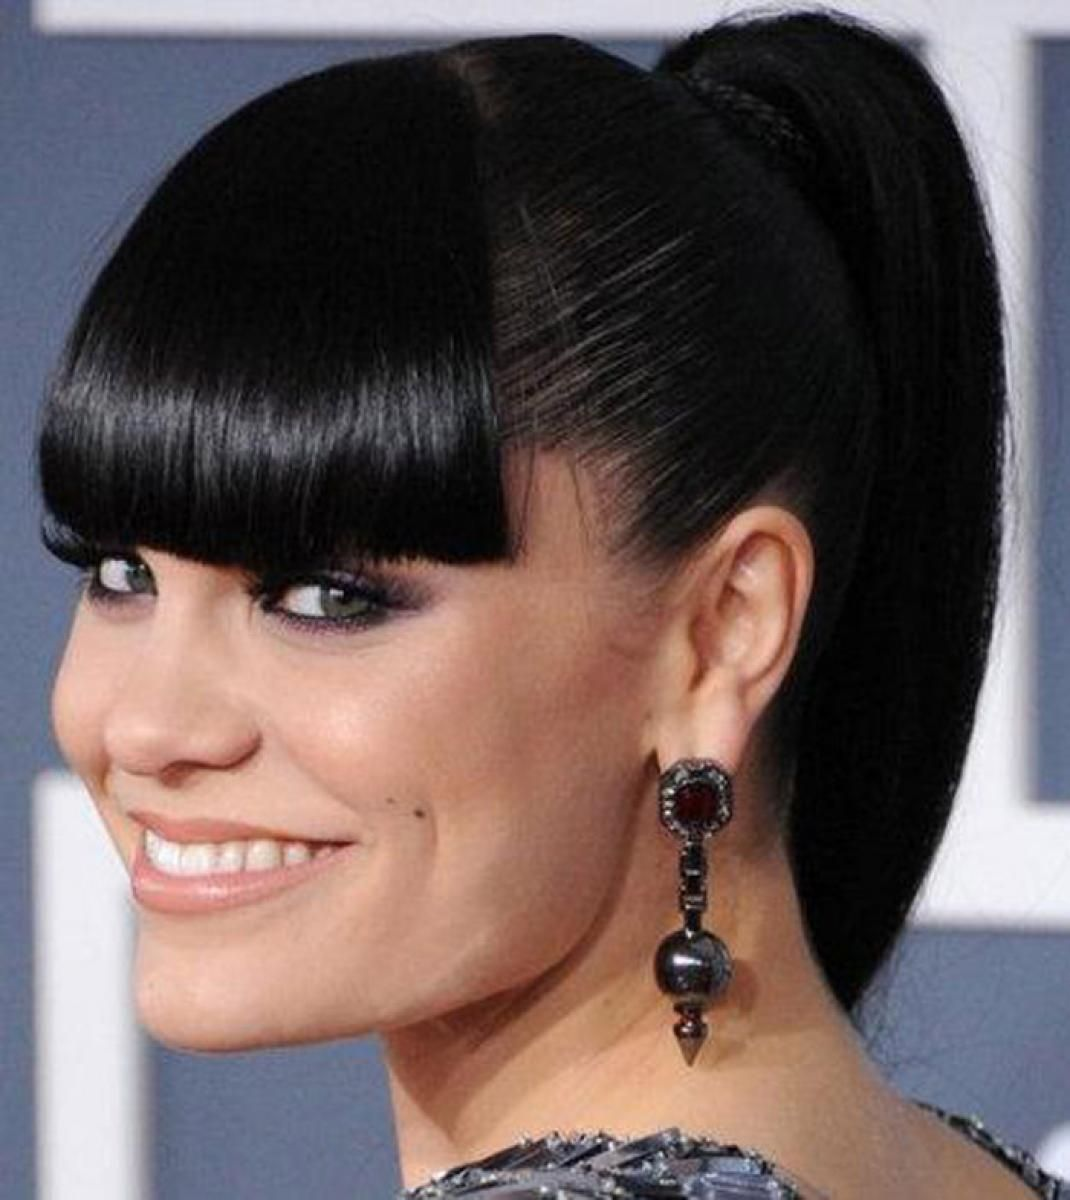 Ponytail Hairstyles With Bangs For Black Women Tpxveilt 1070